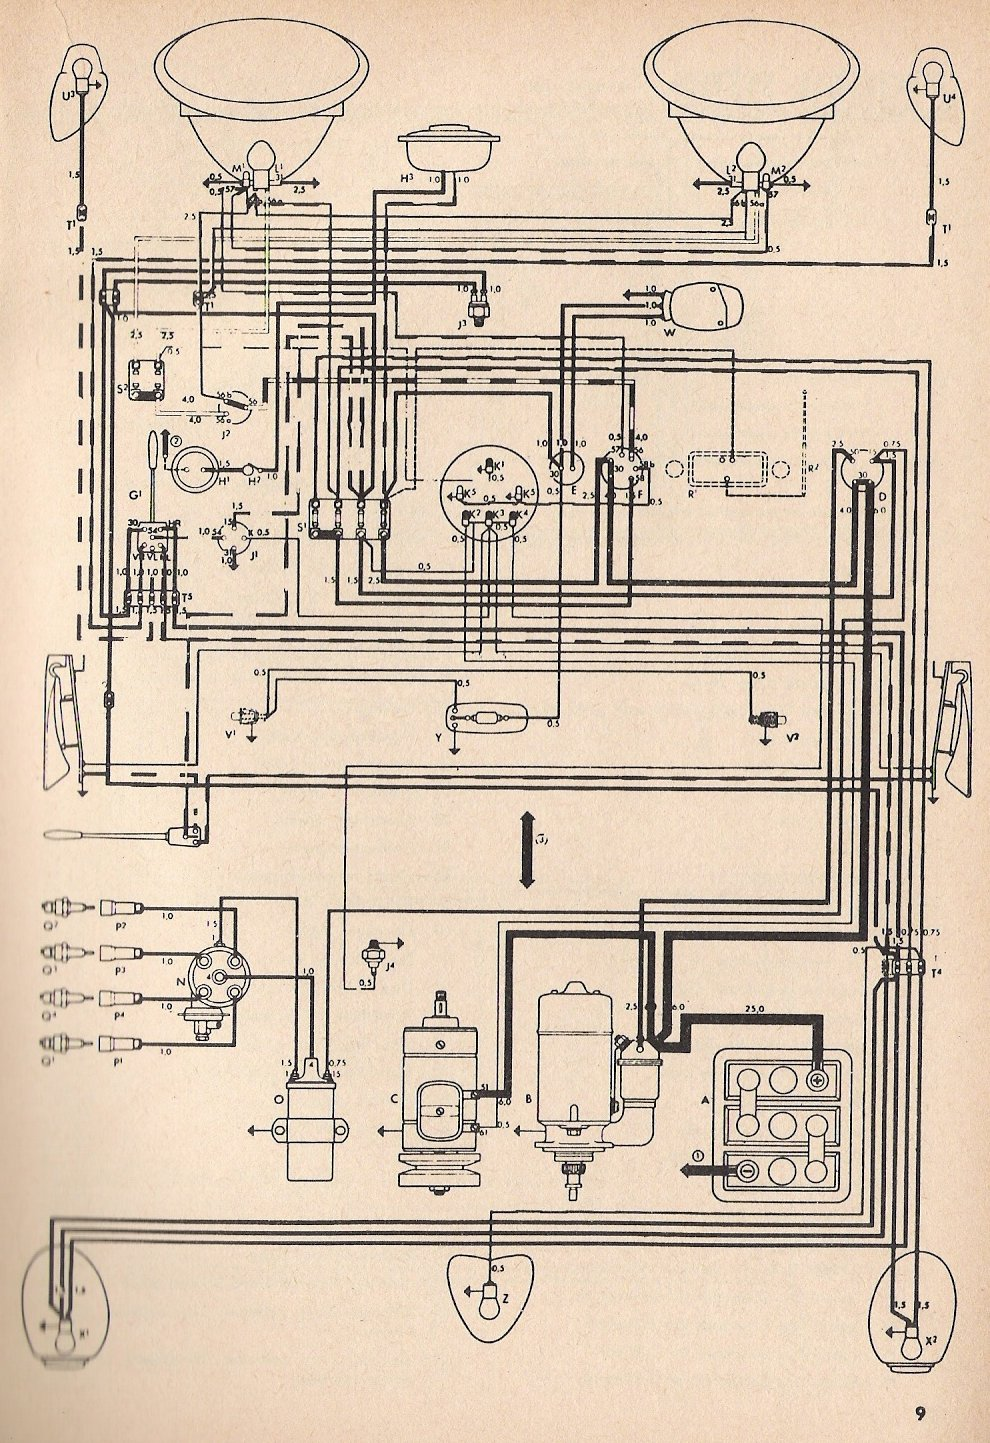 hight resolution of 1979 vw beetle wiring diagram